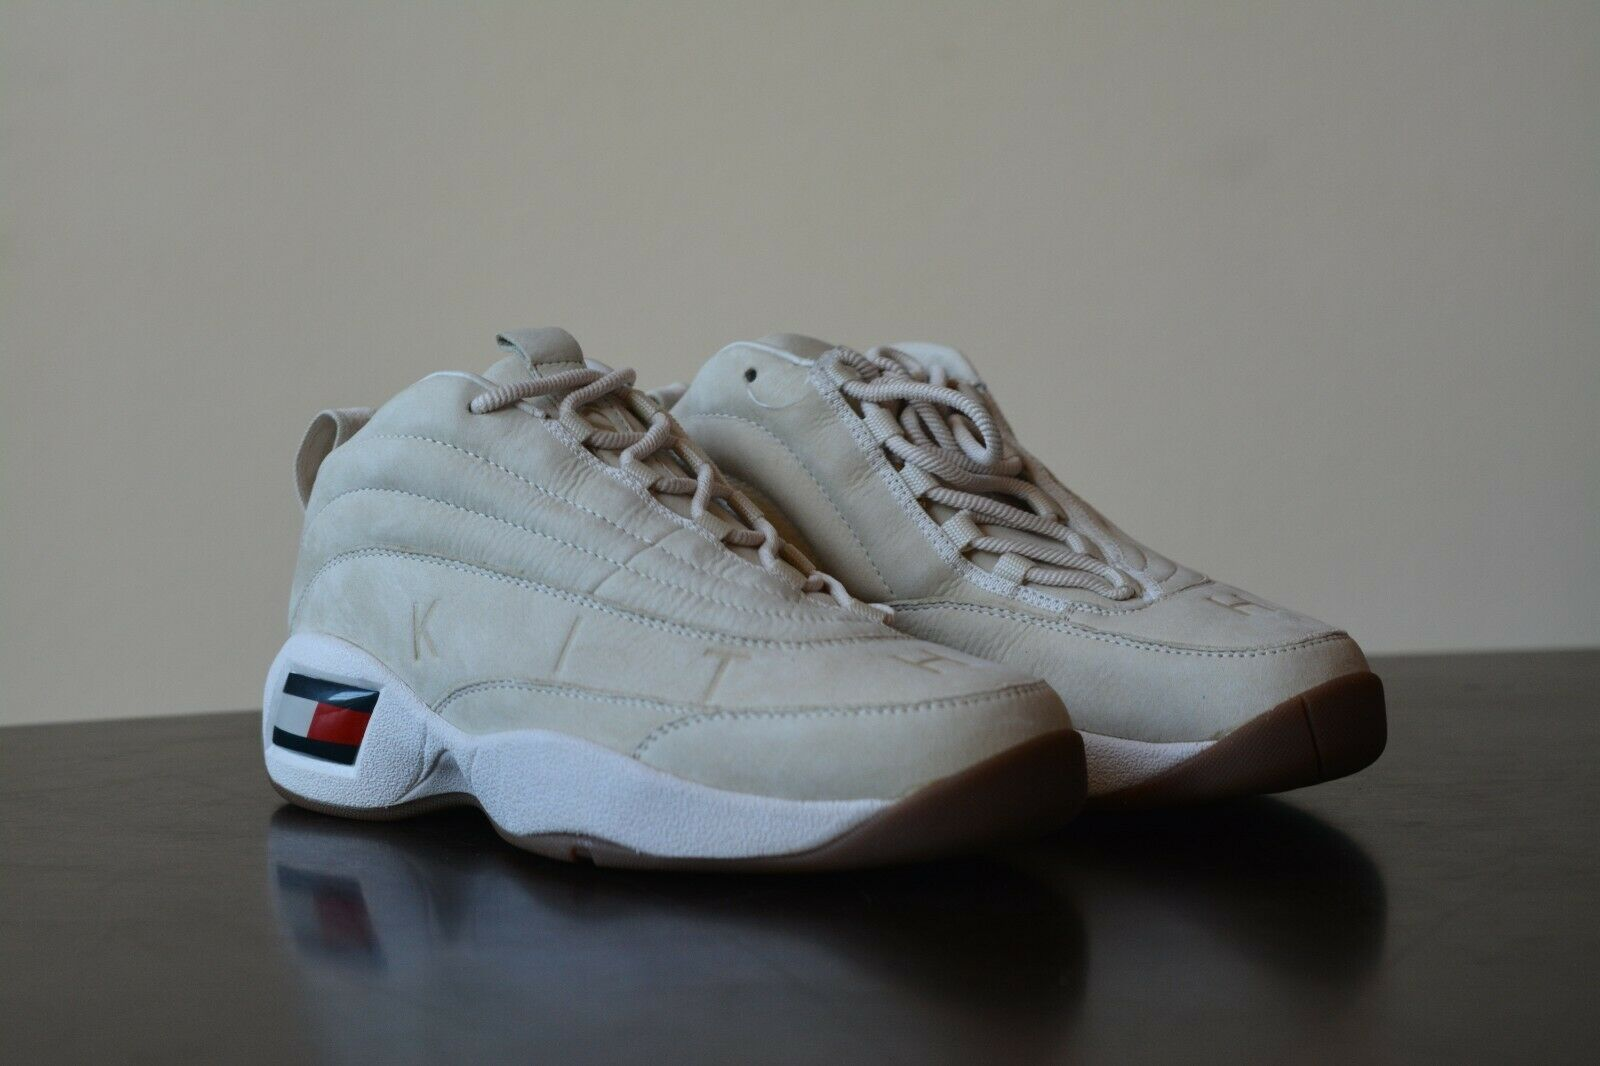 New 2018 KITH x Tommy Hilfiger Lux Friends & Family Tan Skew Basketball Sneaker